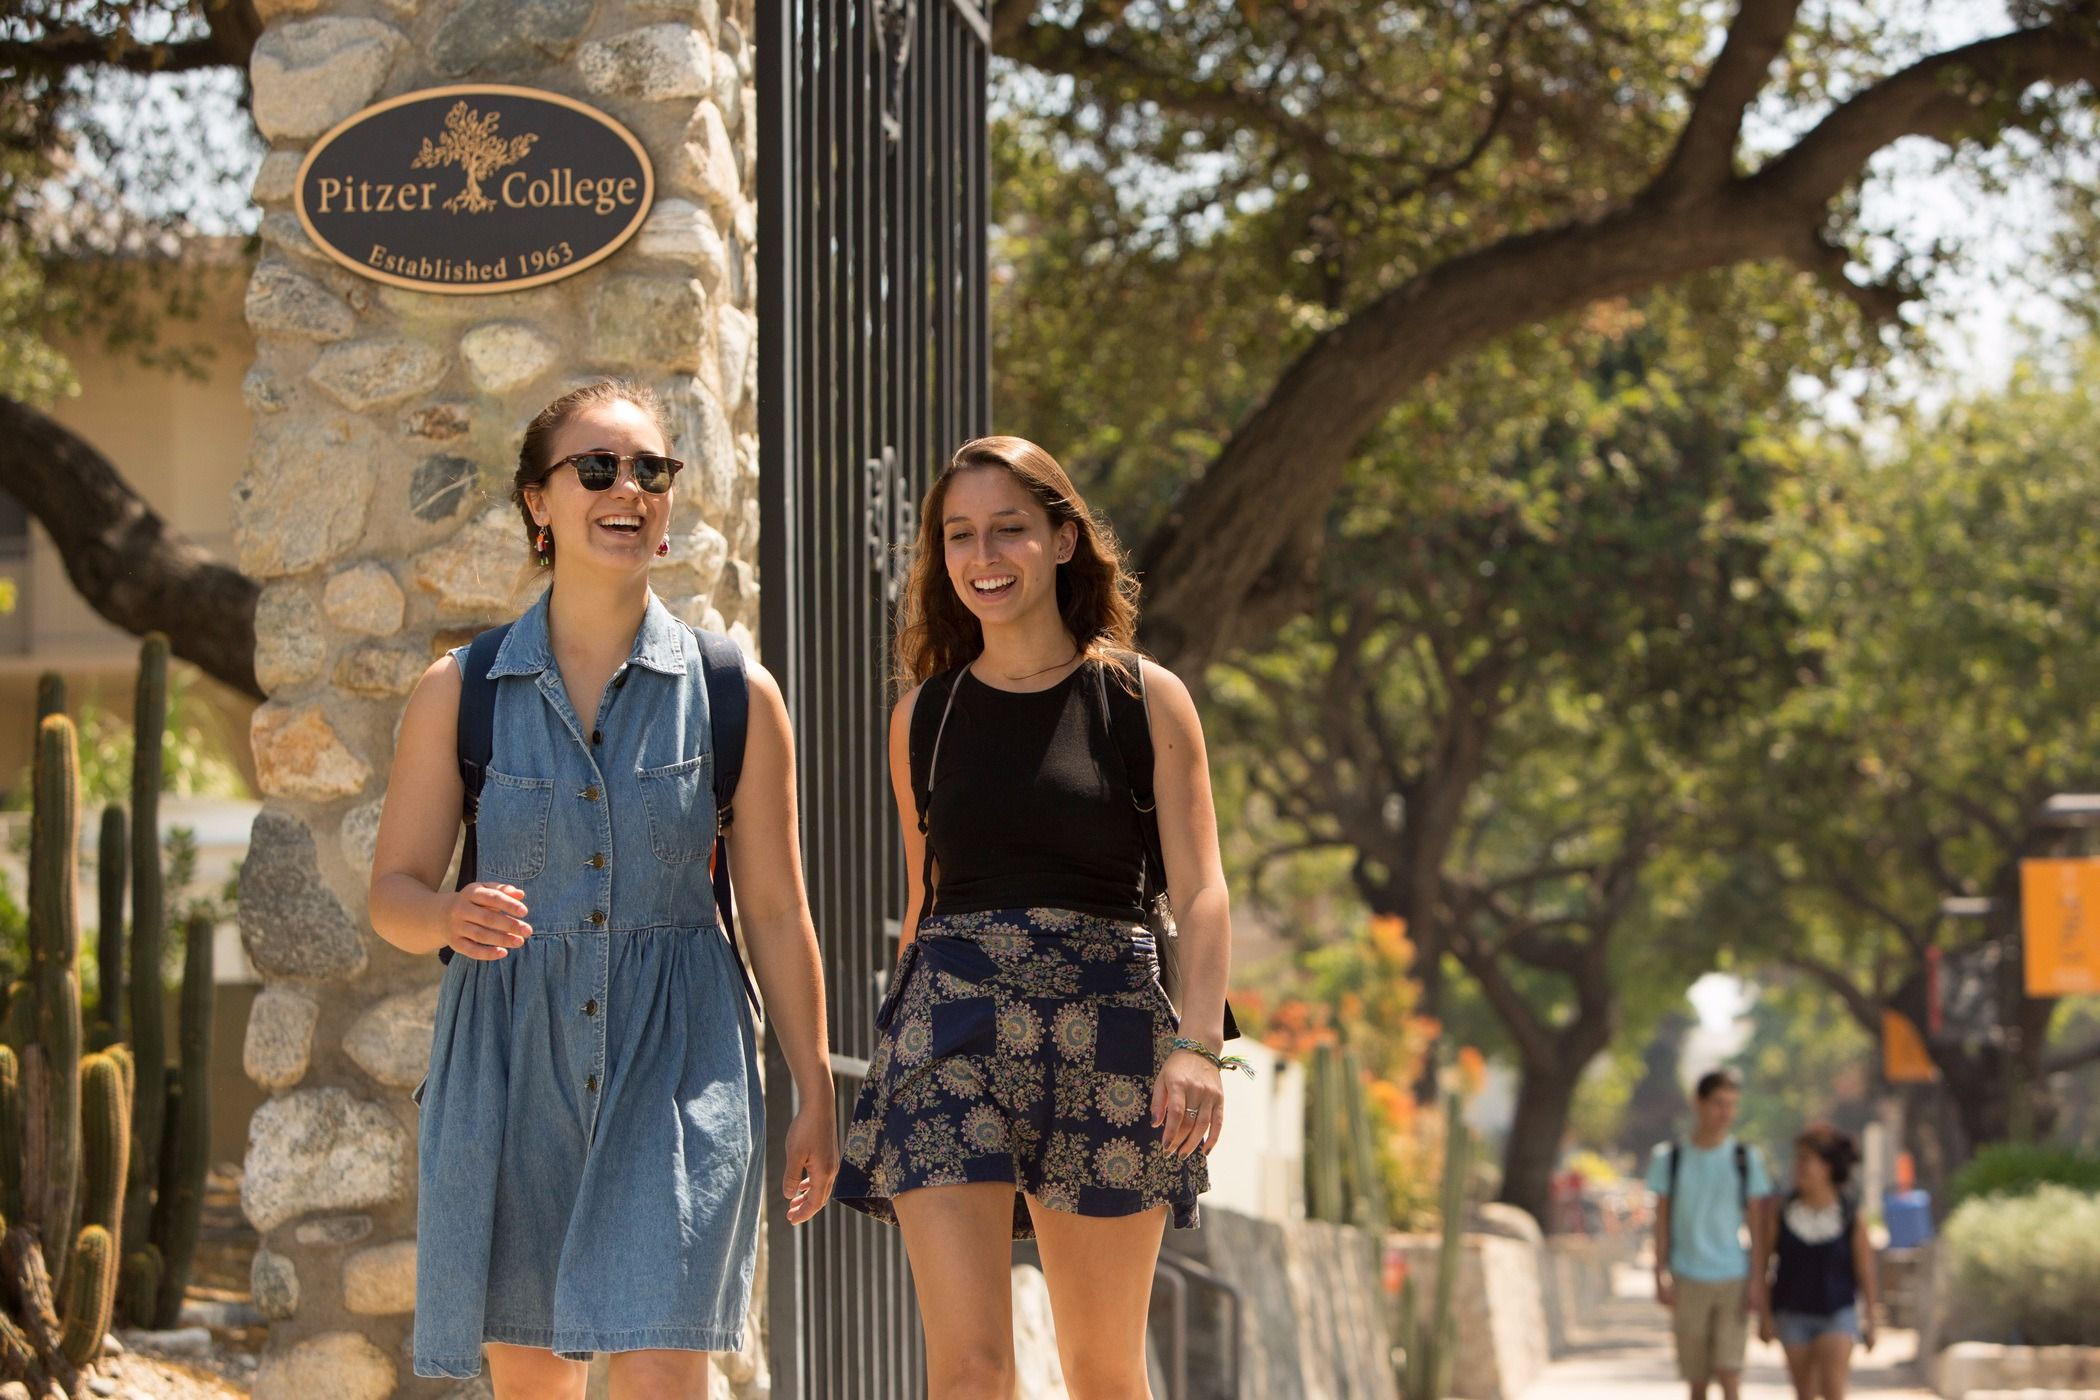 Students walk through the Pitzer College gates.